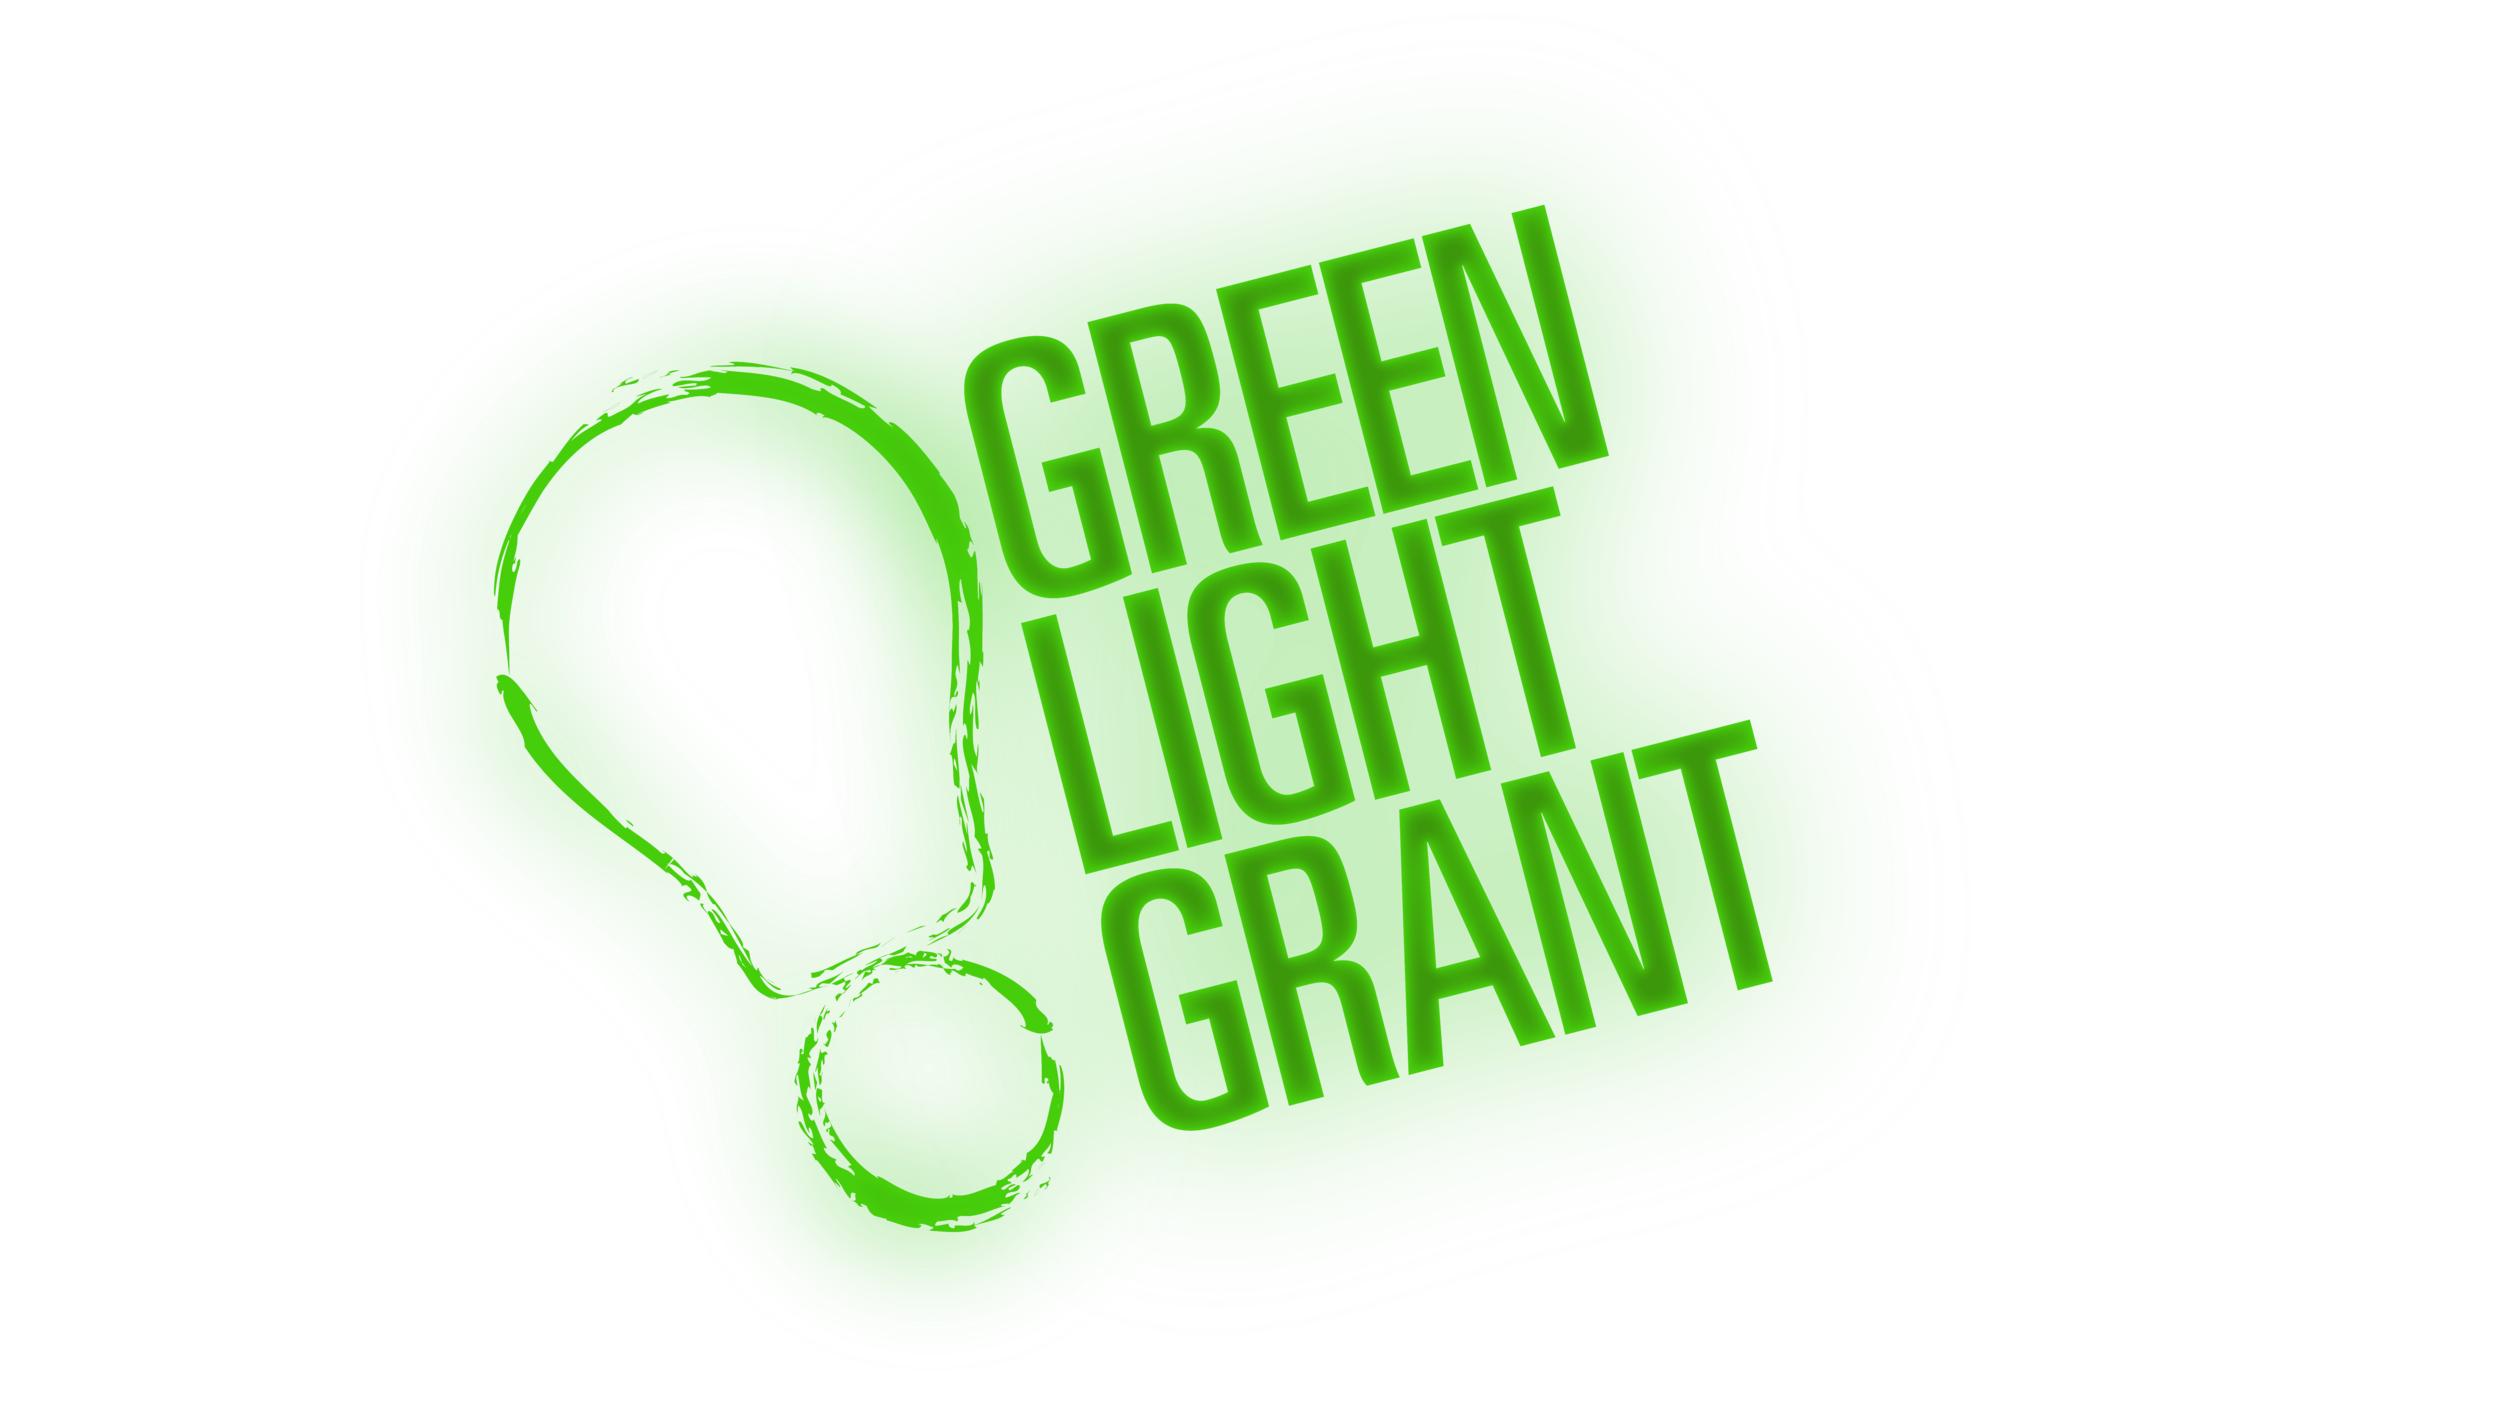 Sterling Sanders, Green Light Grant Logo V2